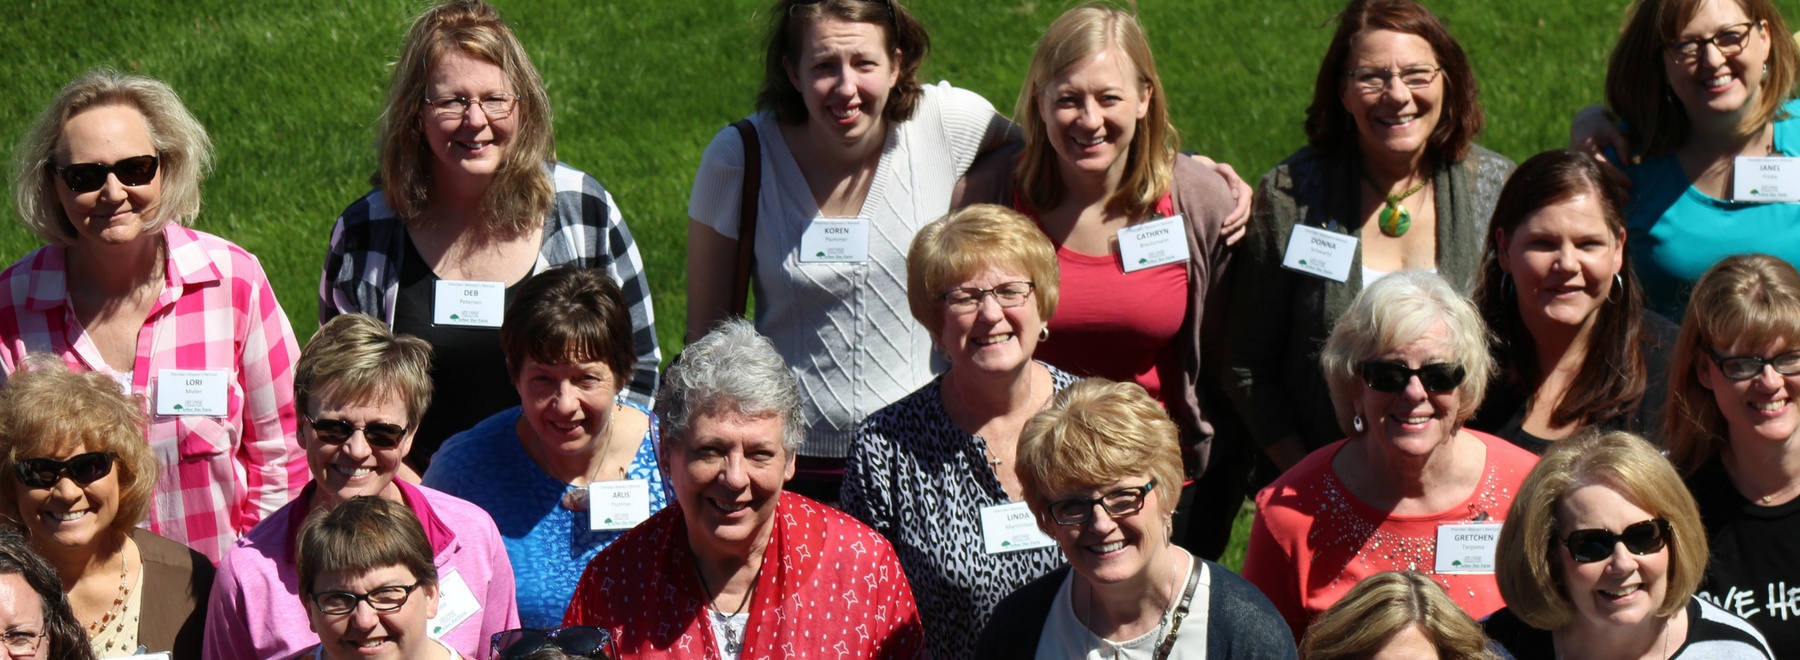 group of women's ministry